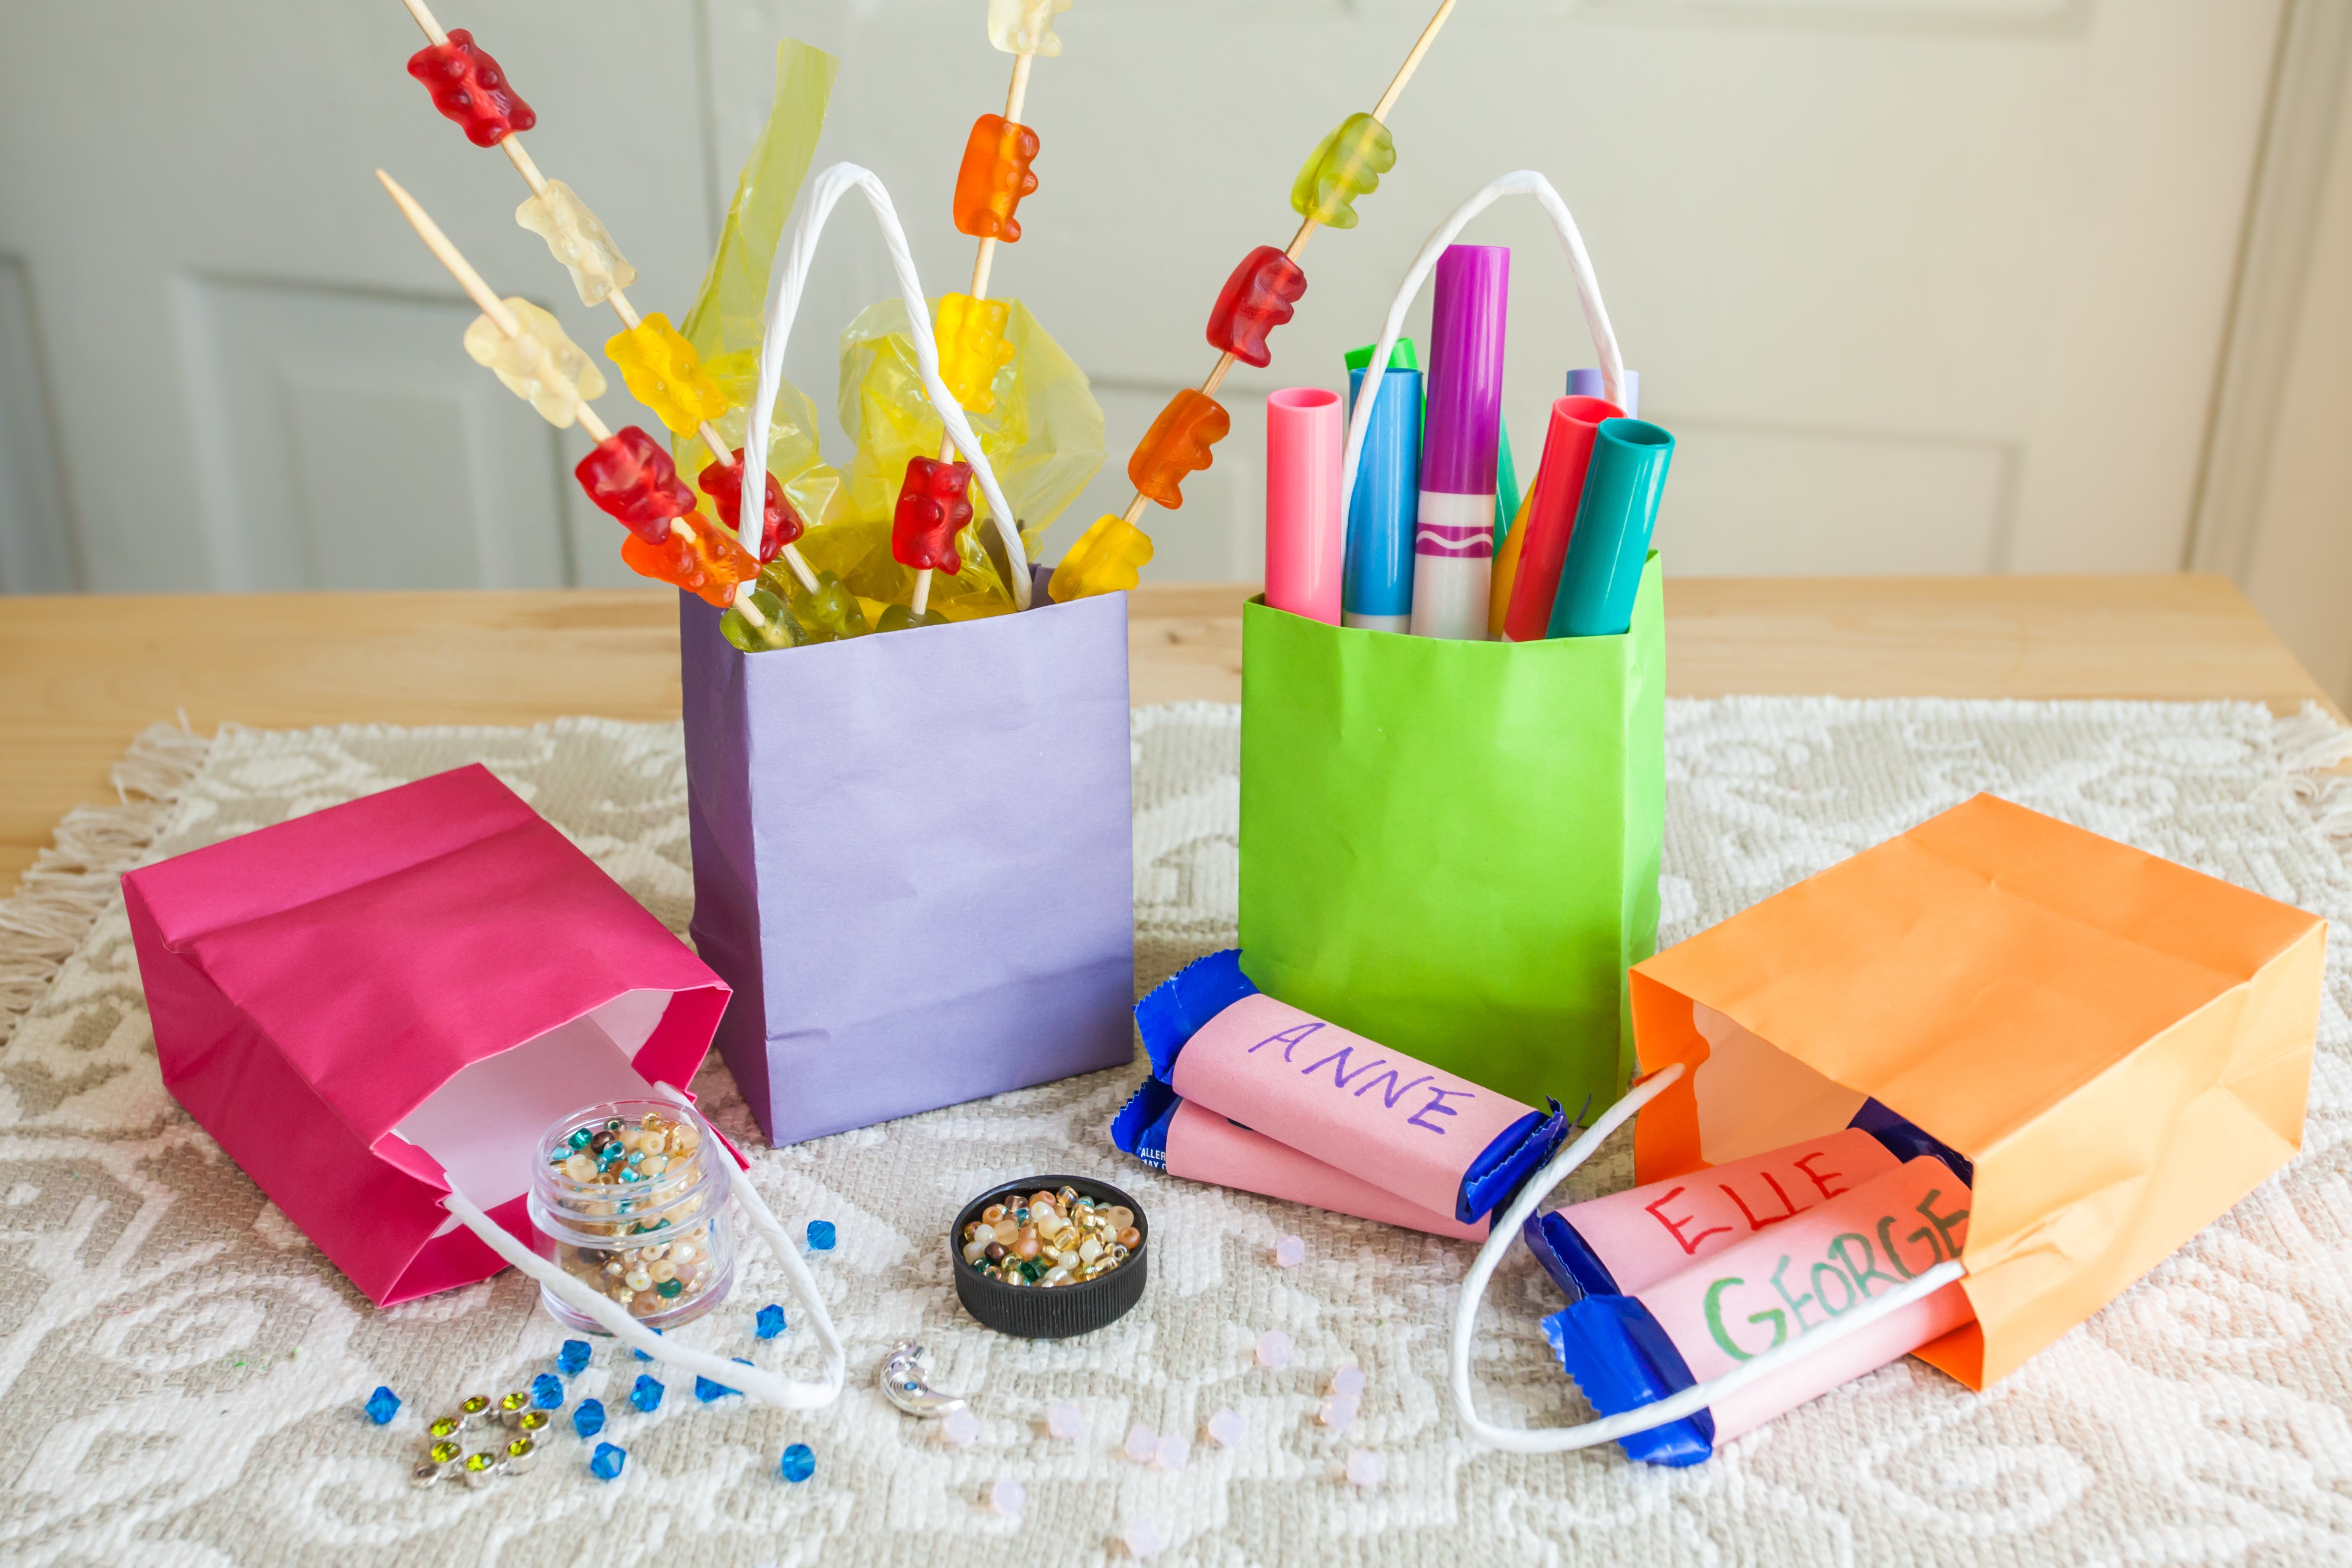 Ideas For Kids Birthday Party Gift Bags (with Pictures)